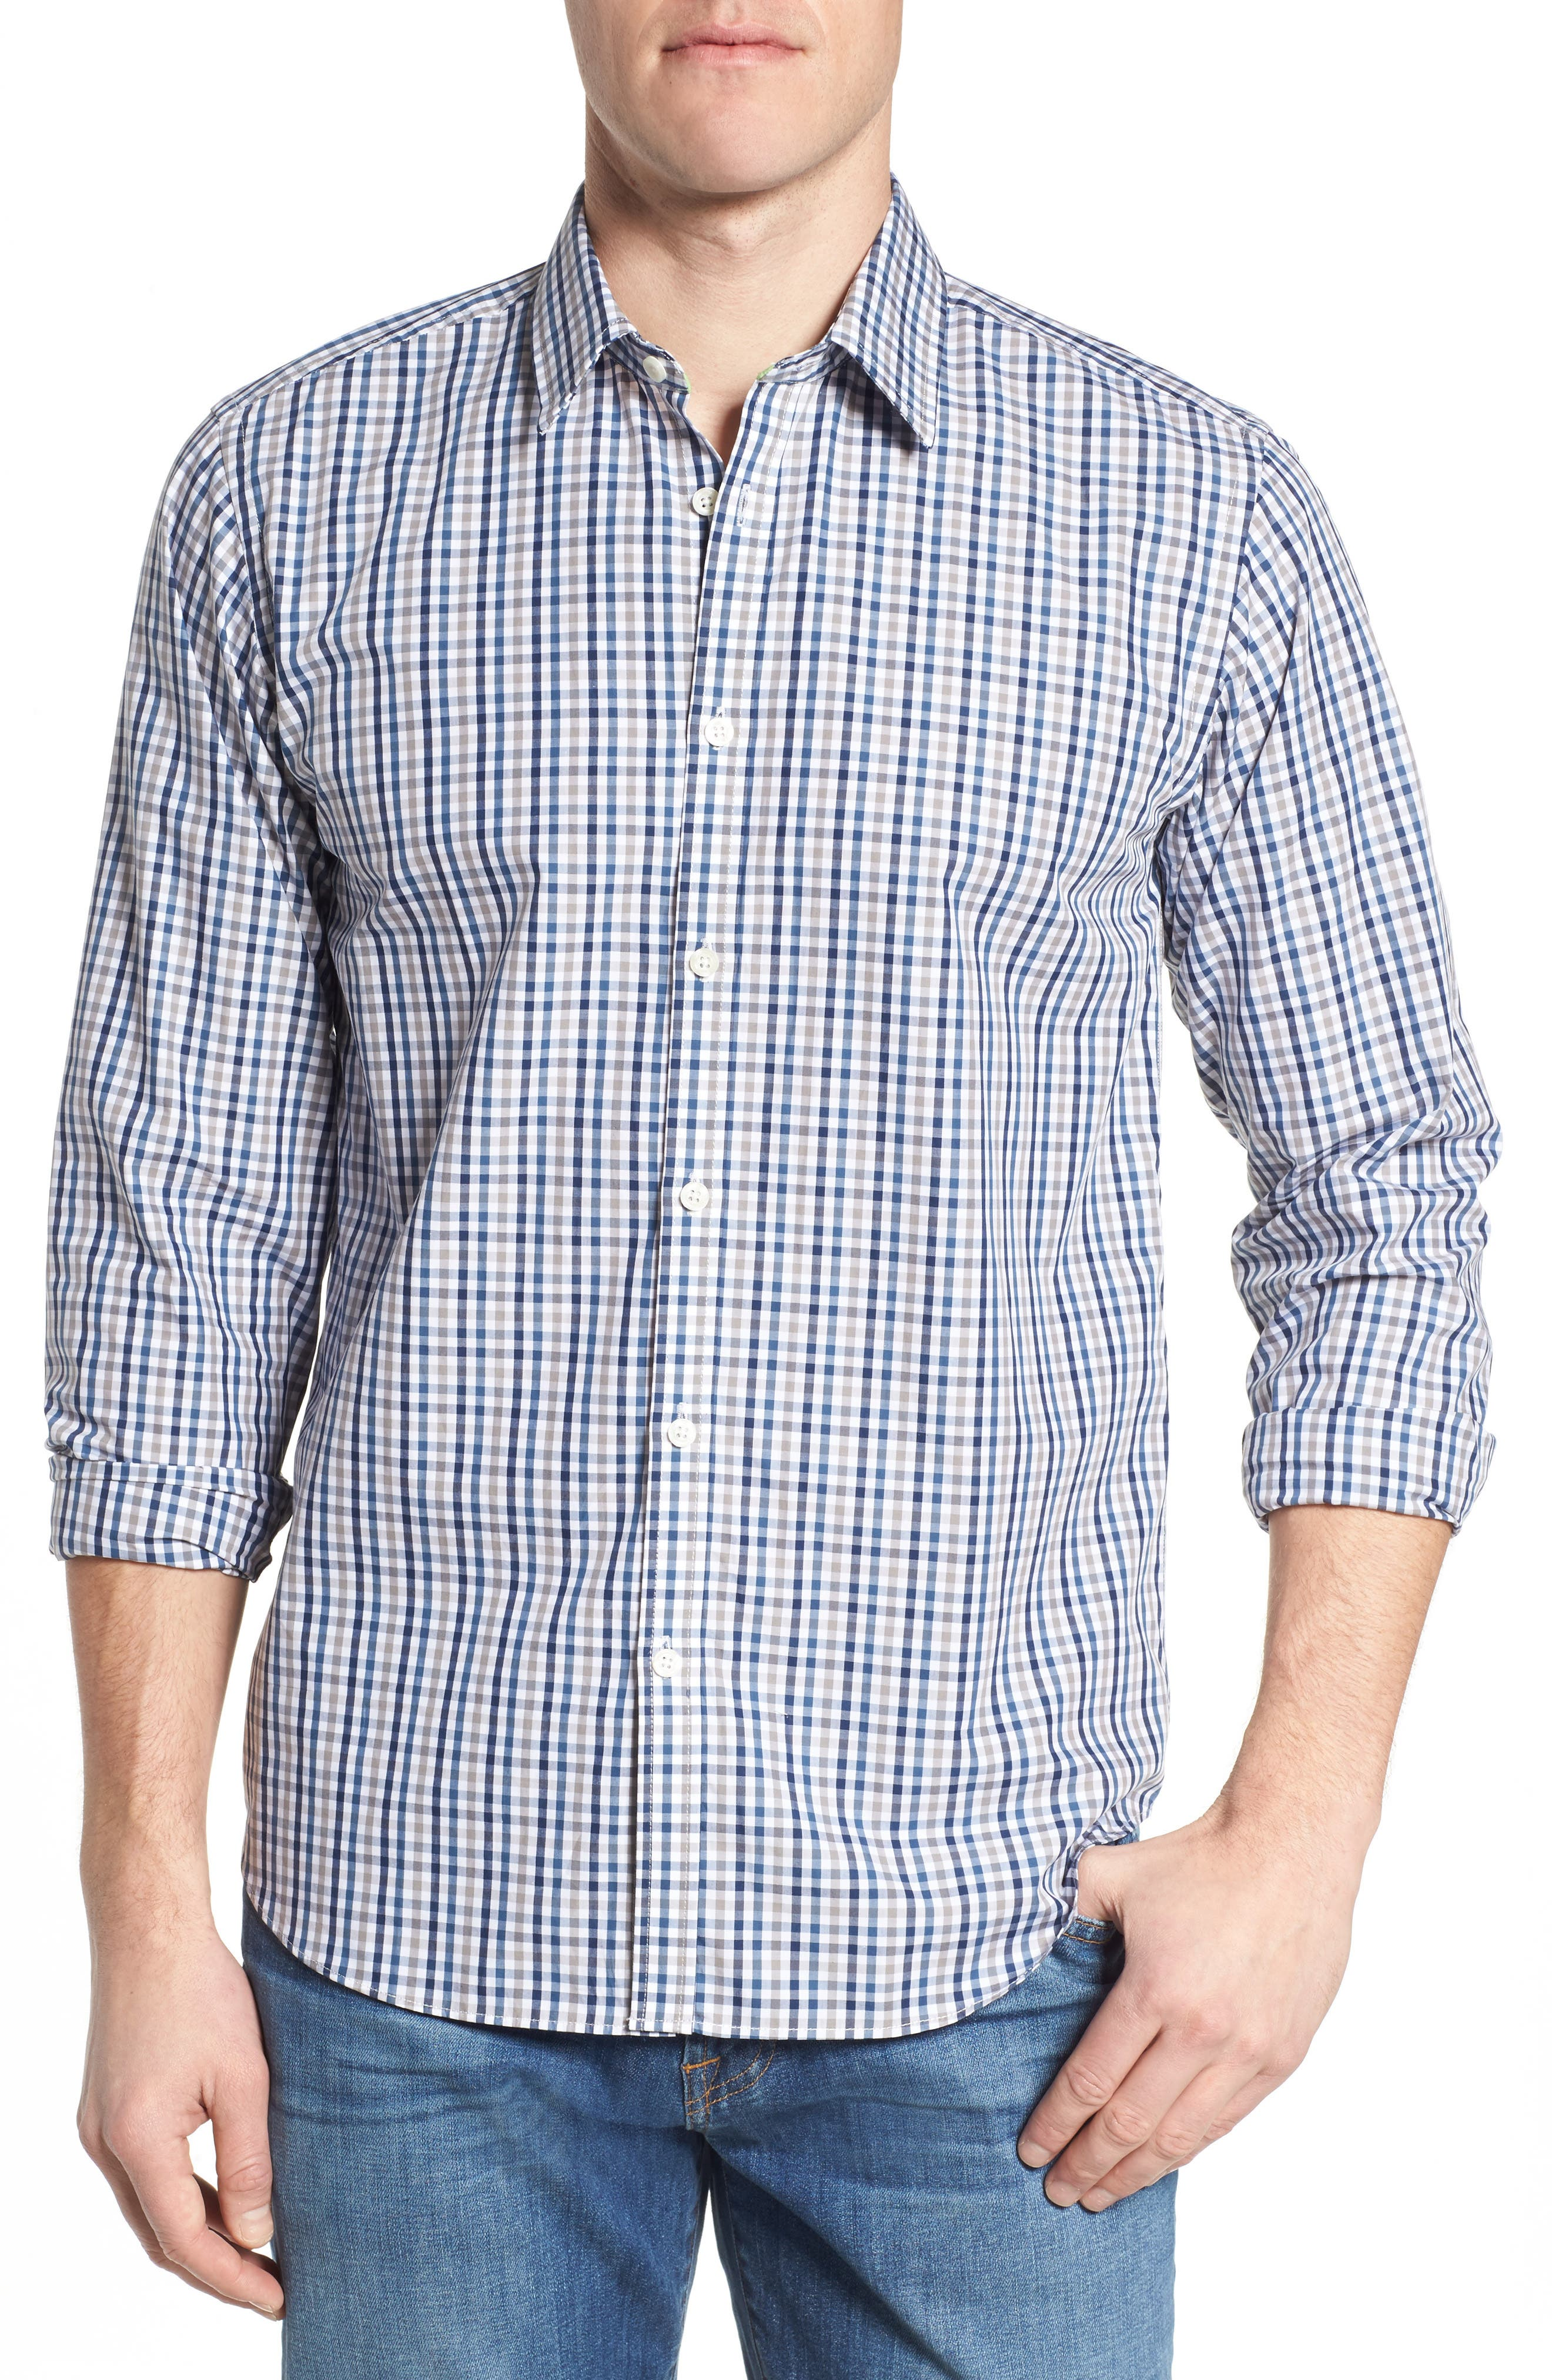 Jeremy Argyle Comfort Fit Check Sport Shirt